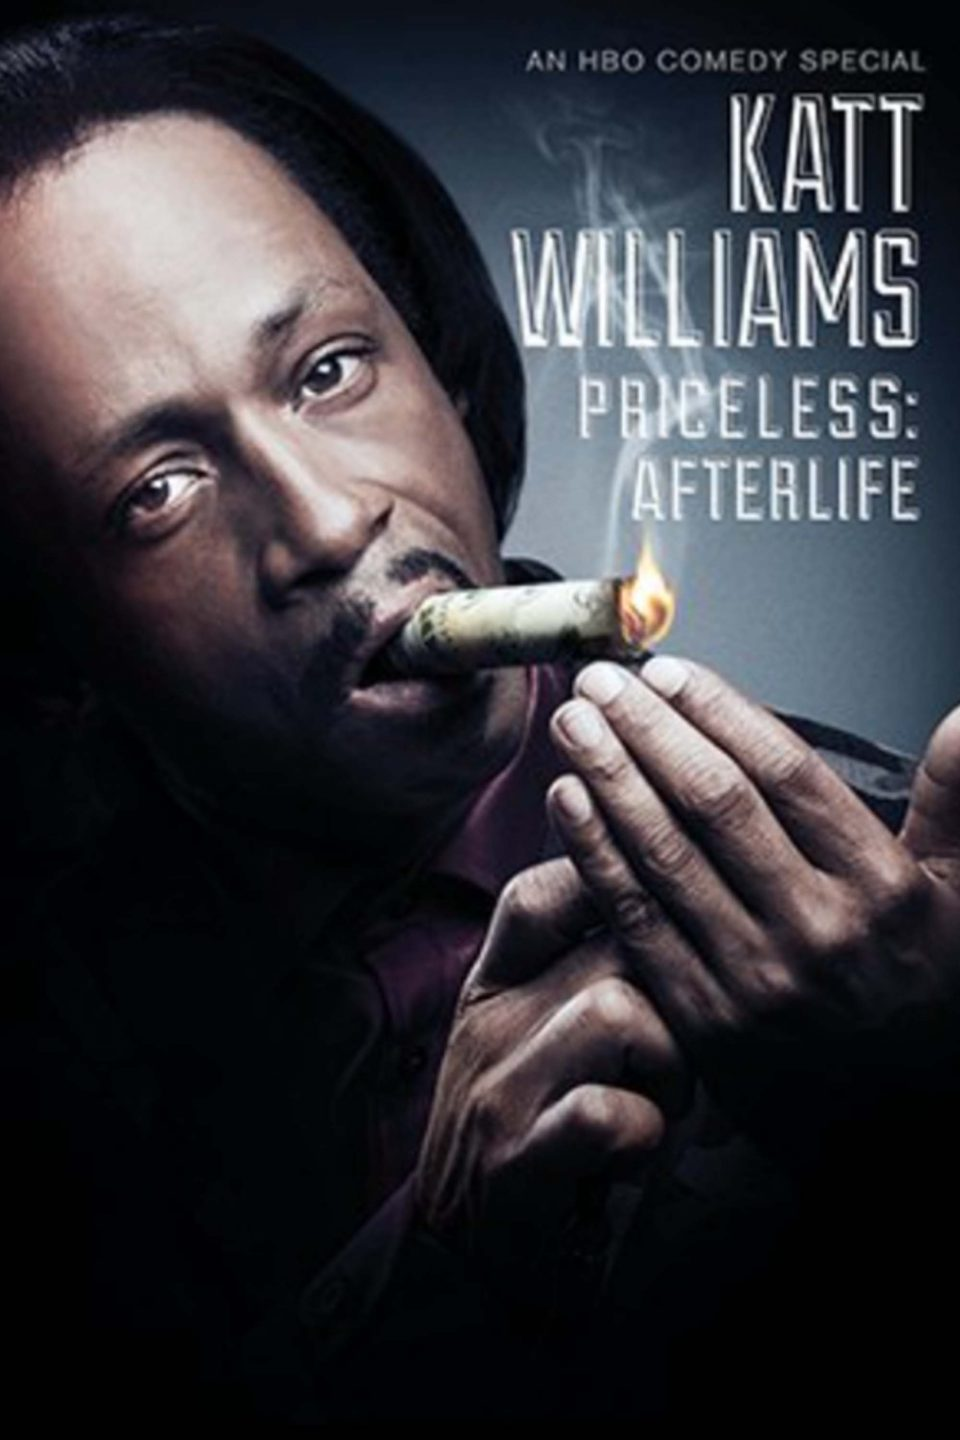 Katt Williams Priceless Afterlife Vertical